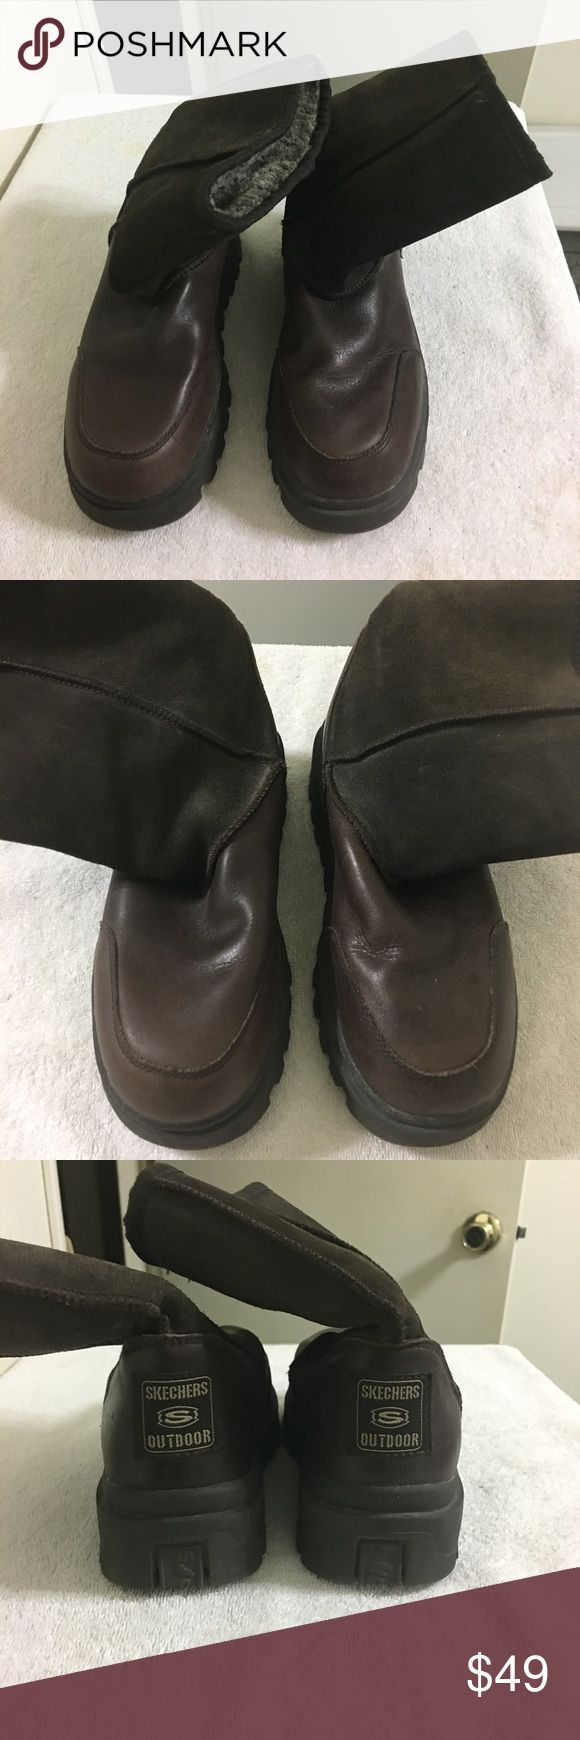 Sketchers Boots Outdoor Brown Size 6 Cute & comfortable Sketchers Outdoor Boots for sale.  Dark Brown, Size 6.  Suede upper & Leather base with warm, soft fuzzy textile lining.  Gently worn in great condition. Skechers Shoes Ankle Boots & Booties